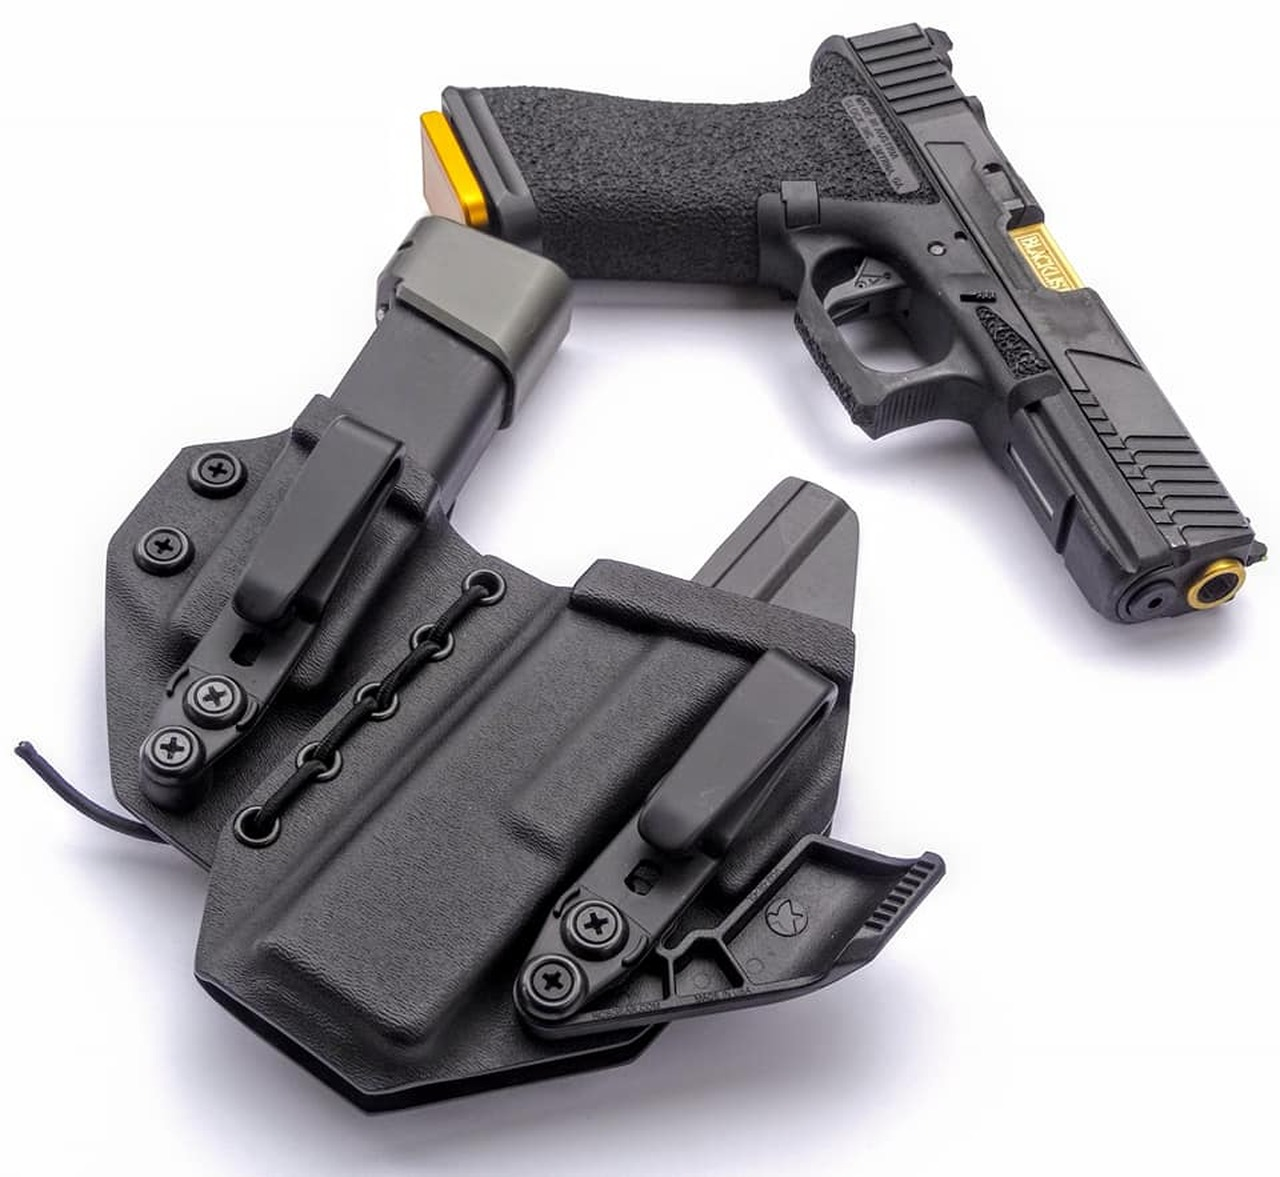 Glock 17 Left Handed Appendix Carry Rig Holster with Shockcord